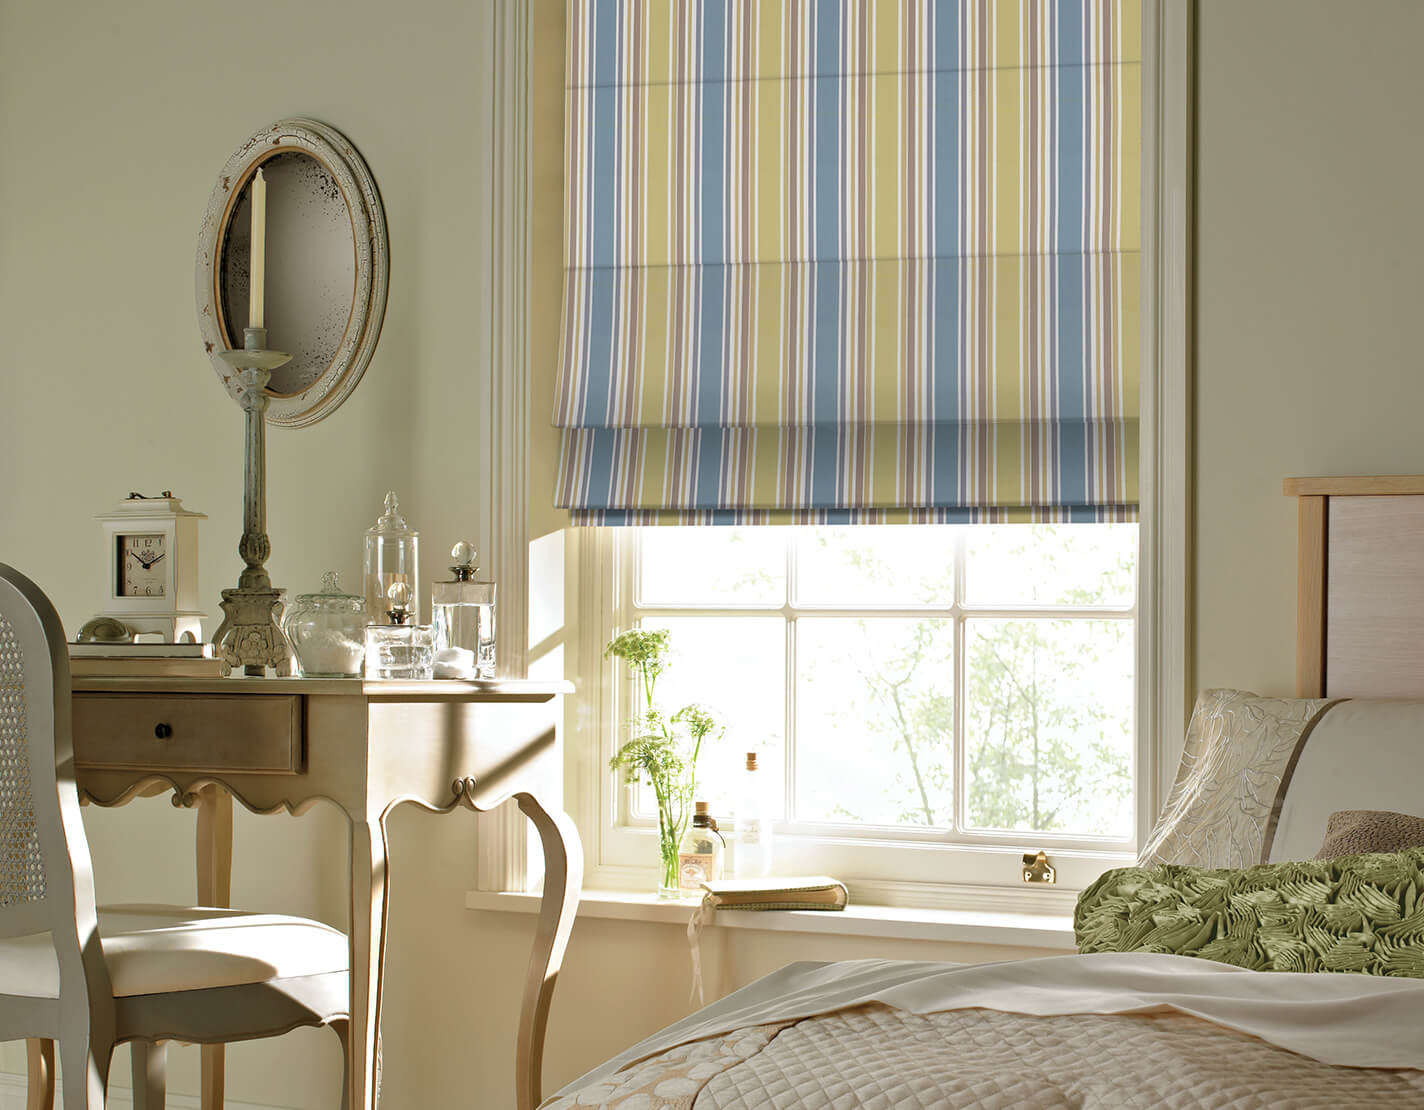 Vertically Striped Roman Blinds in bedroom